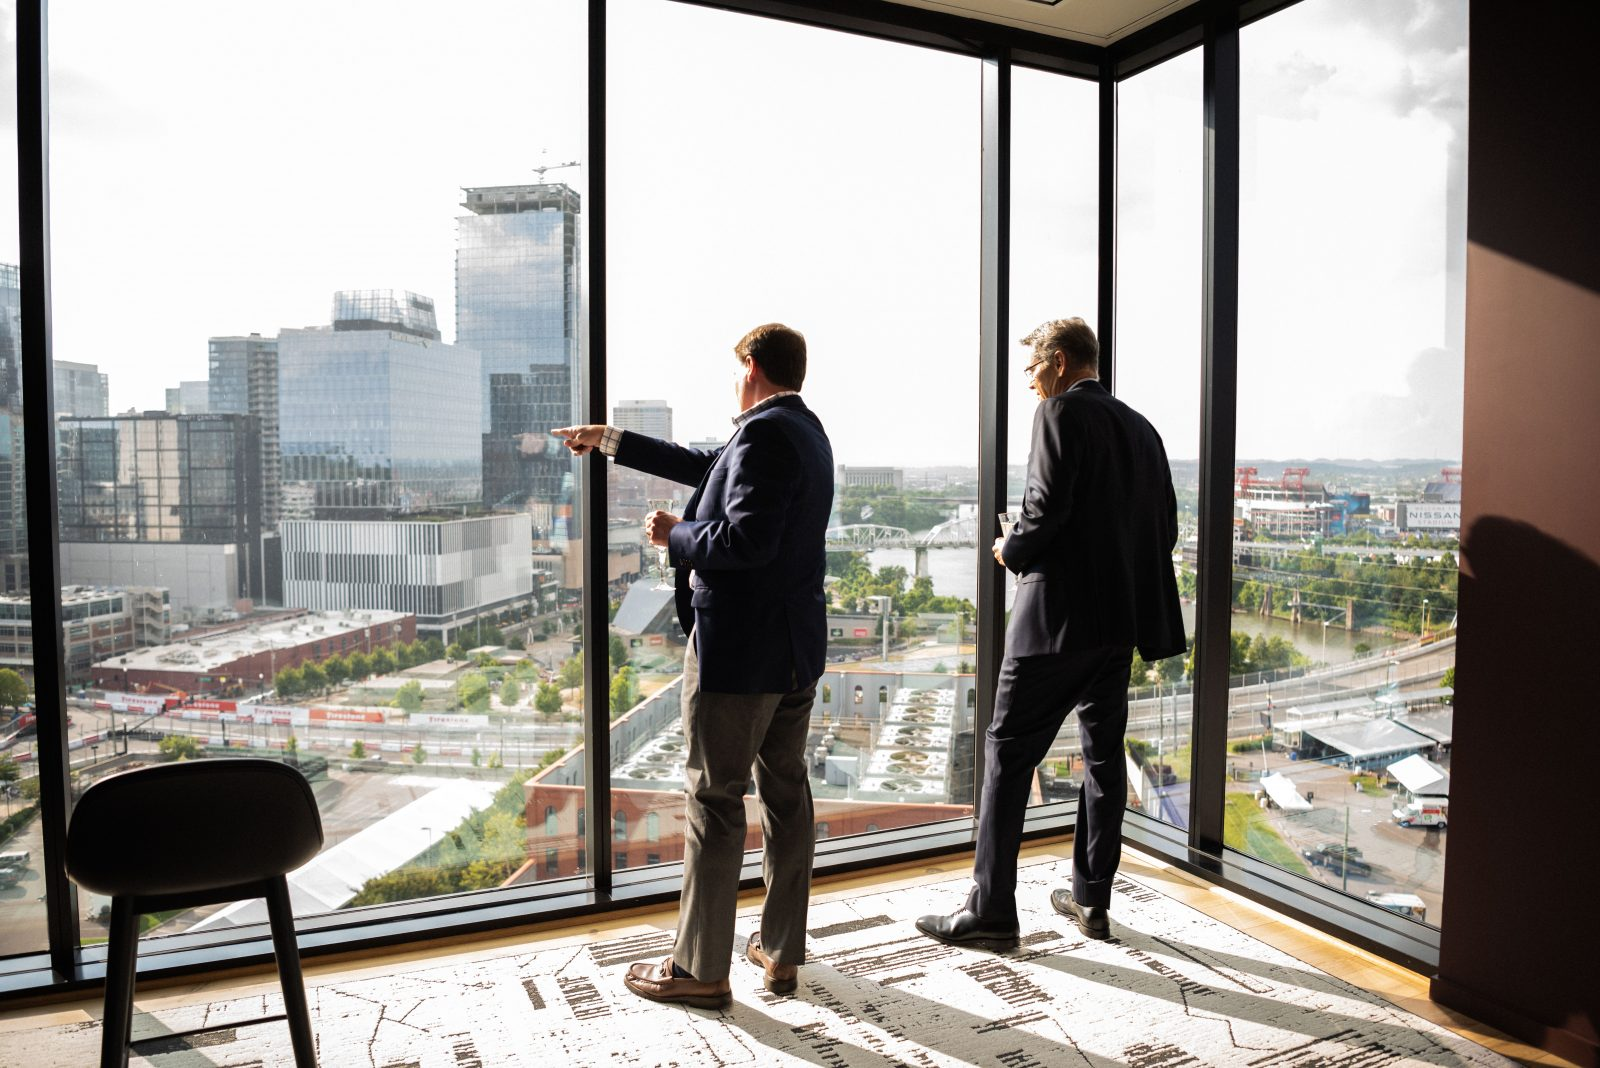 Charles Robert Bone and Cary Mack guys looking out the window of 4th capital at music city grand prix downtown nashville wine tasting